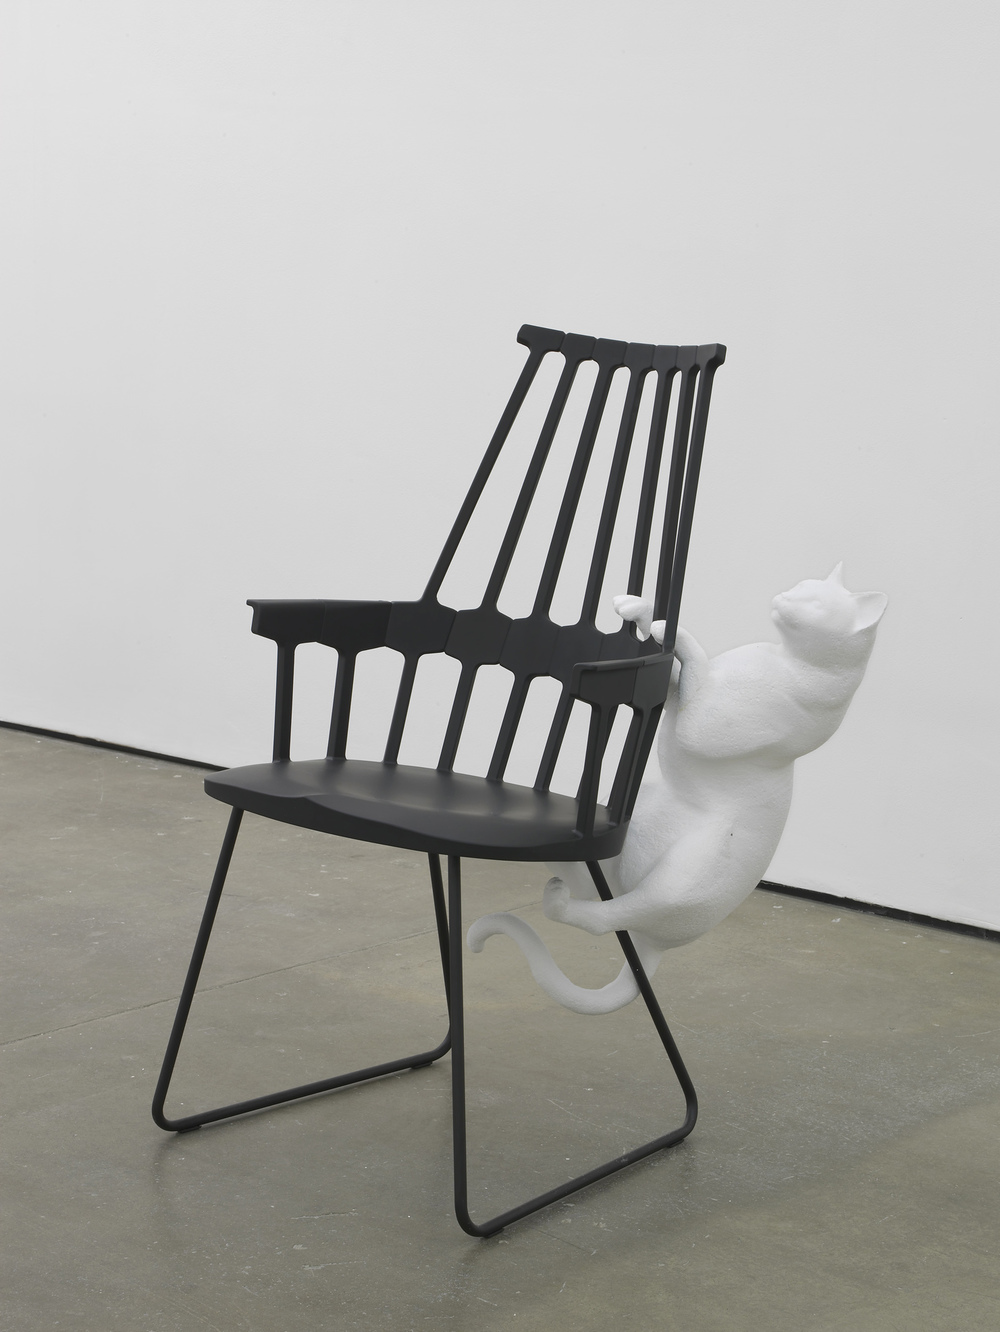 Leaping Cat  2014  Polystyrene and 21st century Windsor chair  98 x 72 x 60 m / 38.5 x 28.3 x 23.6 in